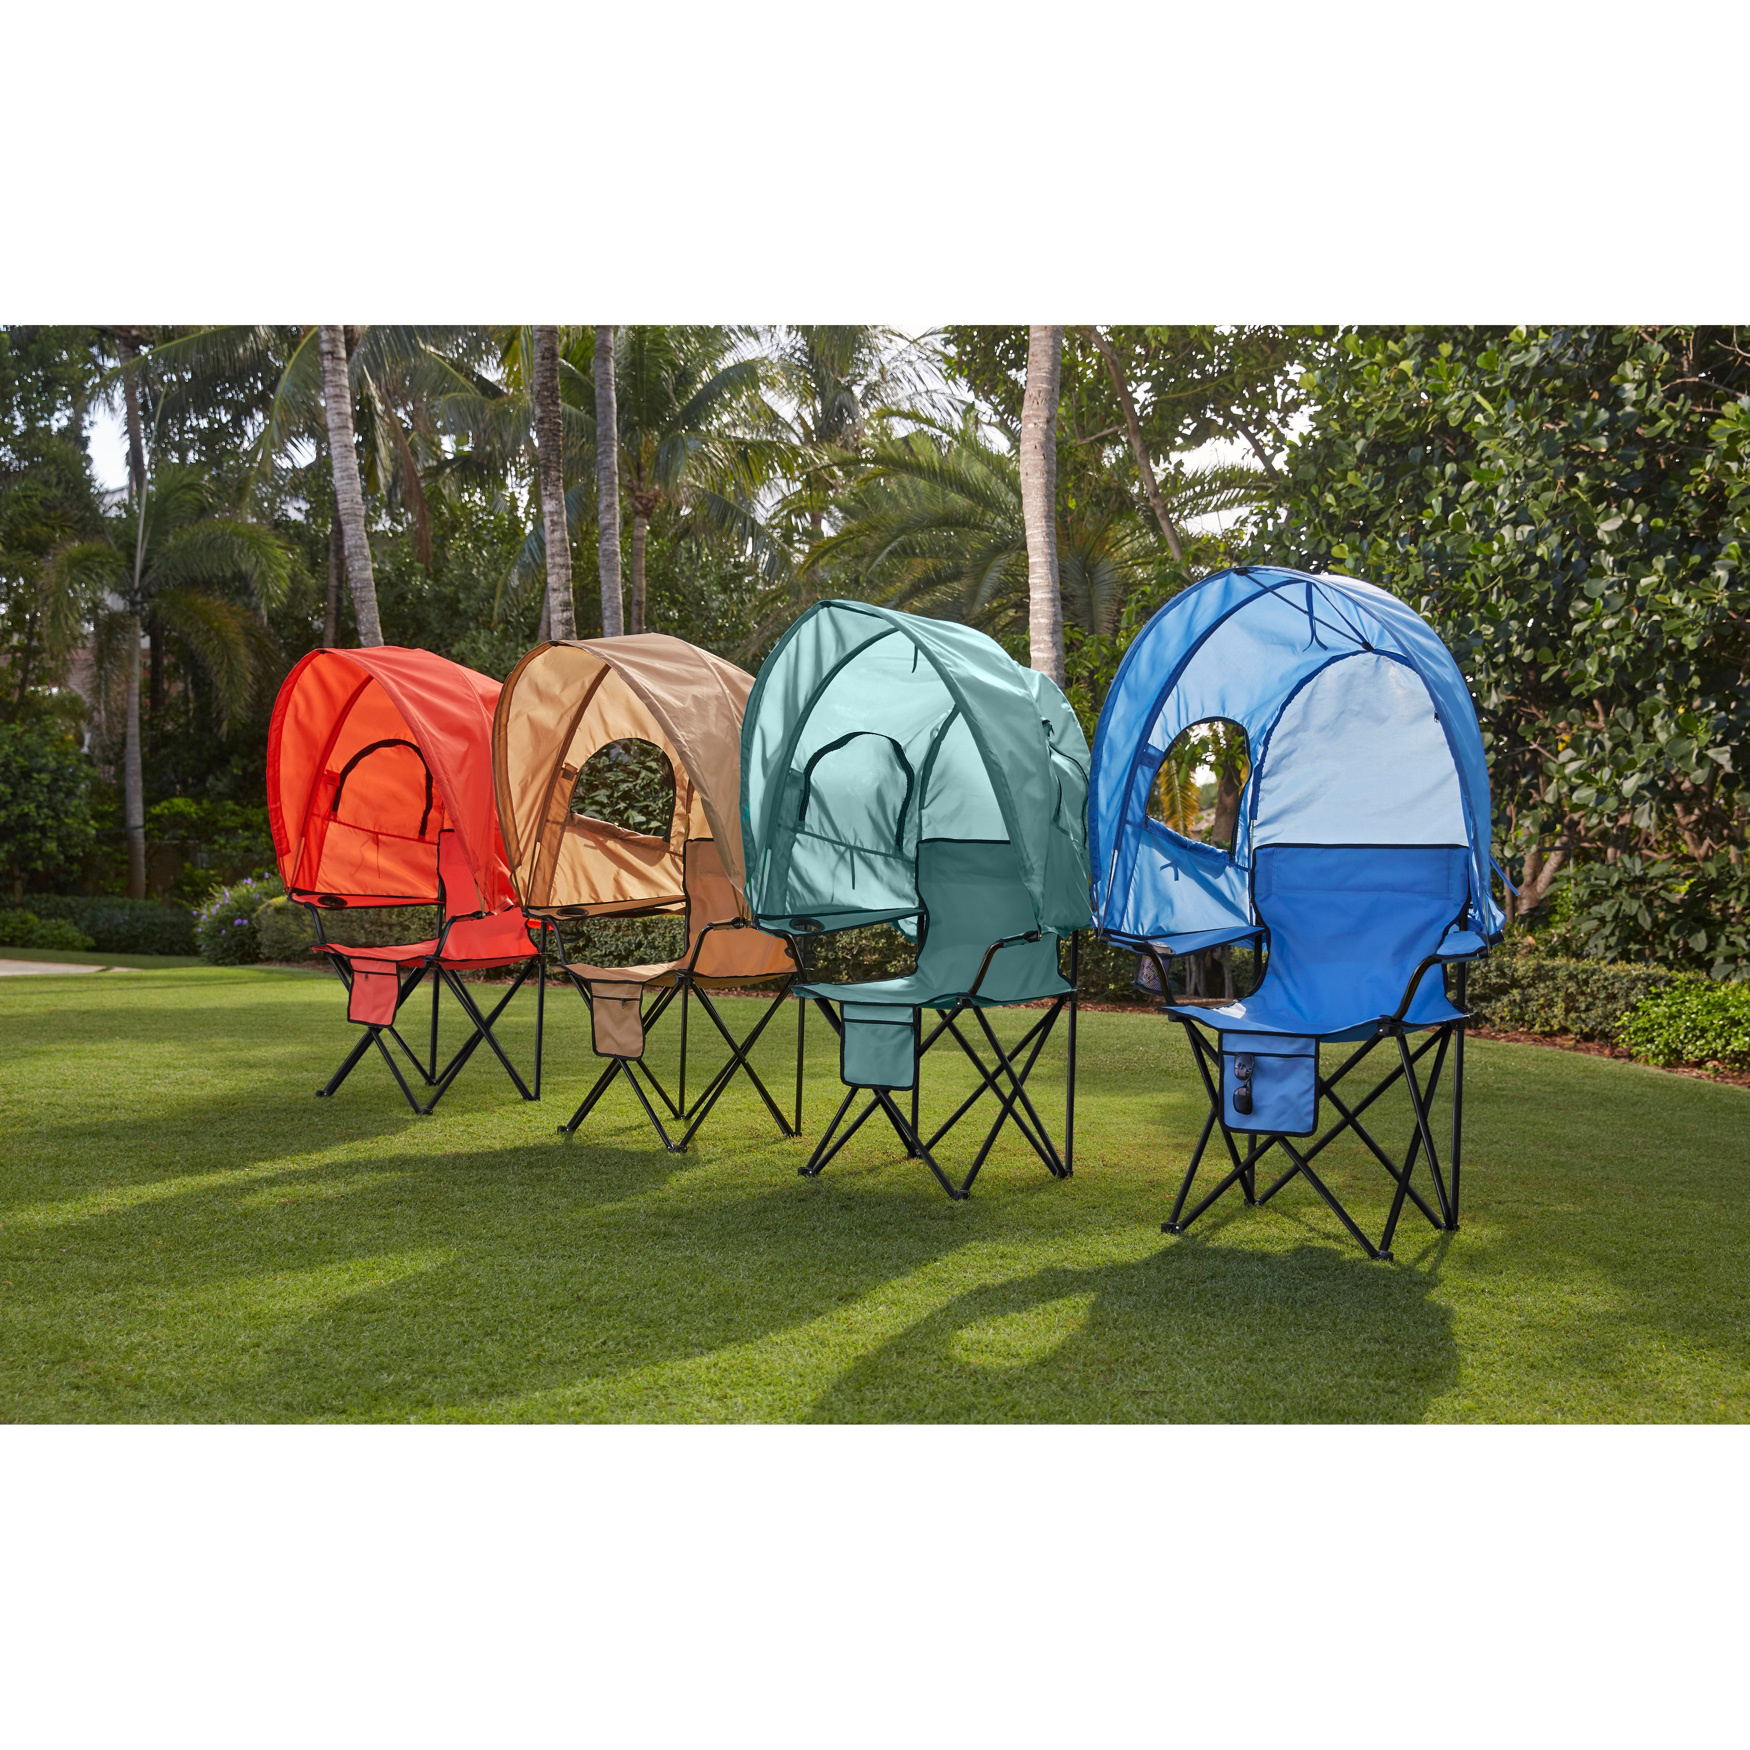 BrylaneHome Camp Chair with Canopy (4 color options)